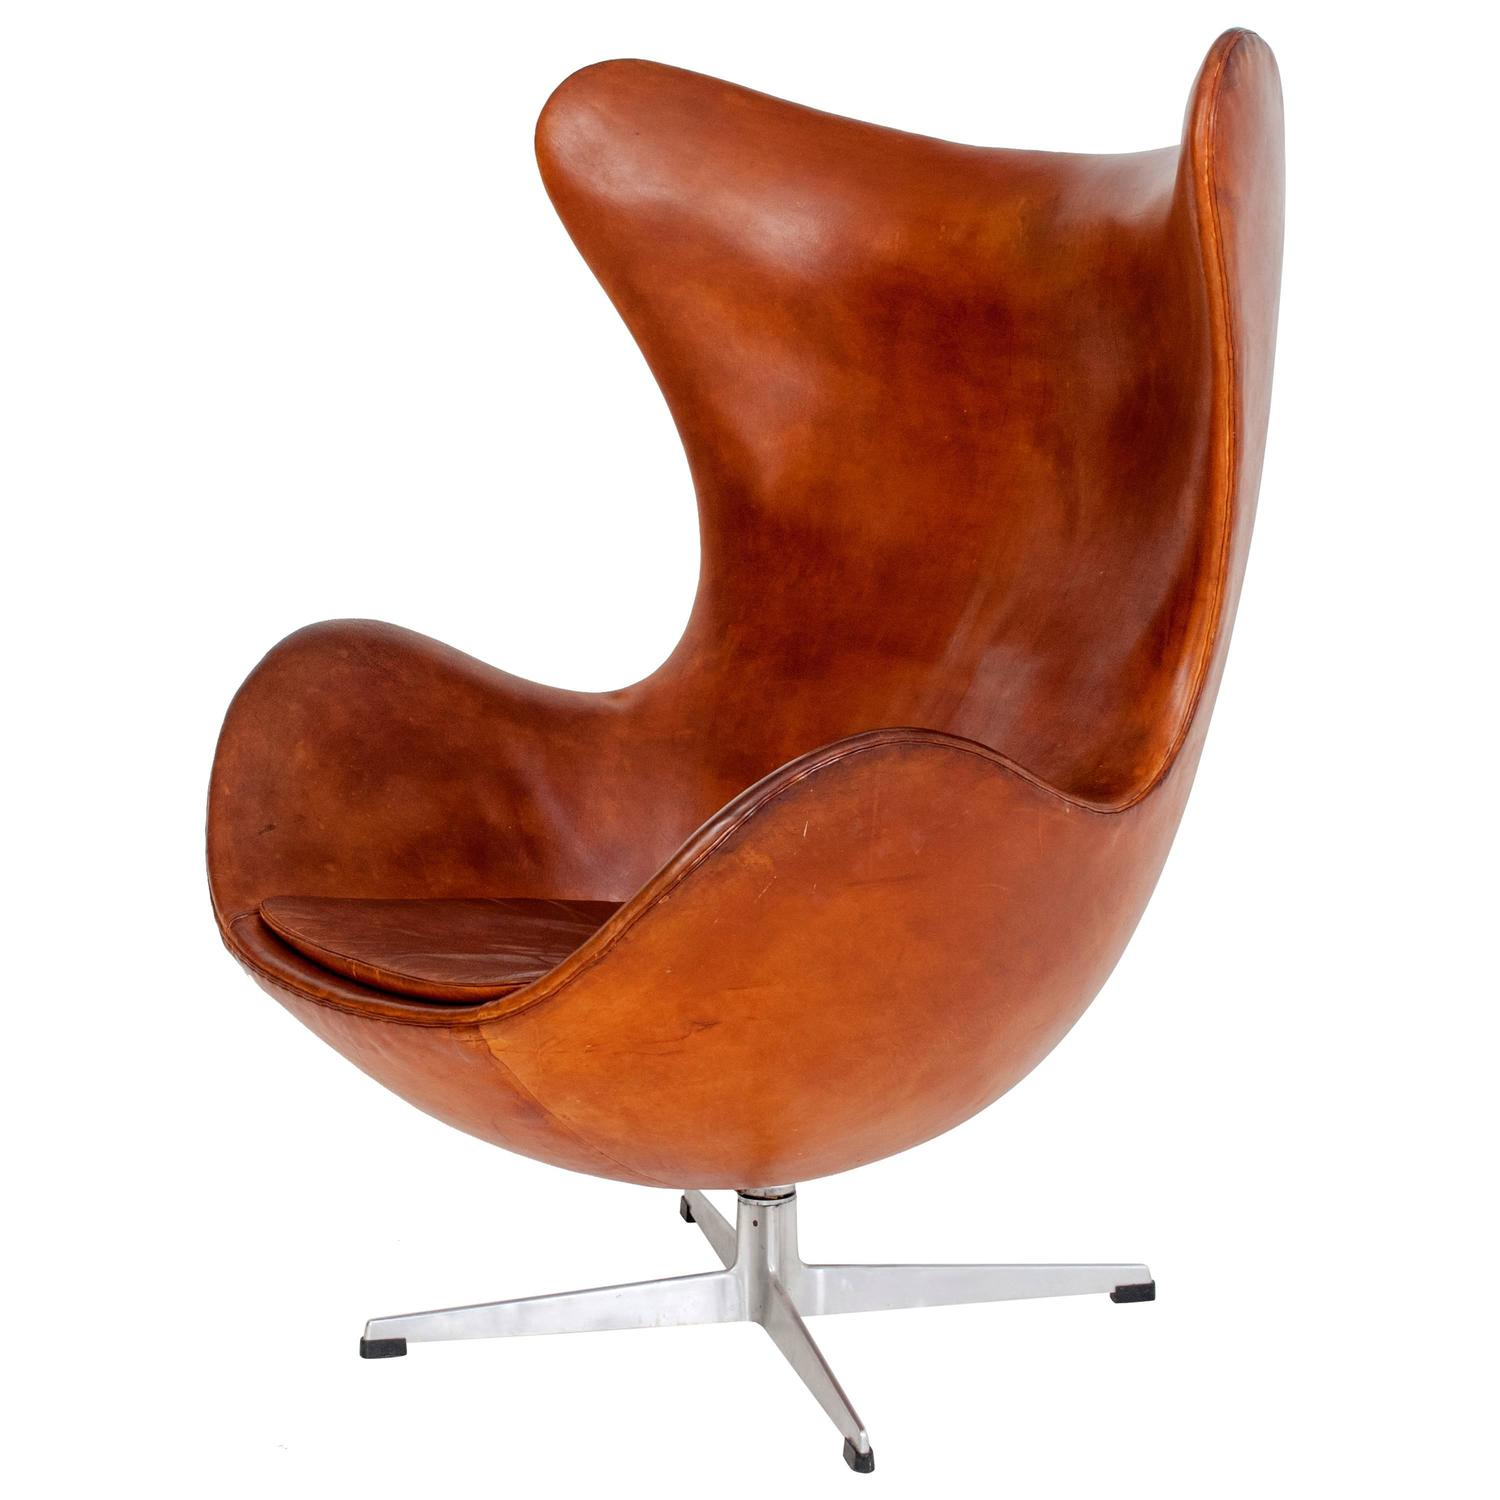 Arne jacobsen egg chair at 1stdibs for Egg chair jacobsen